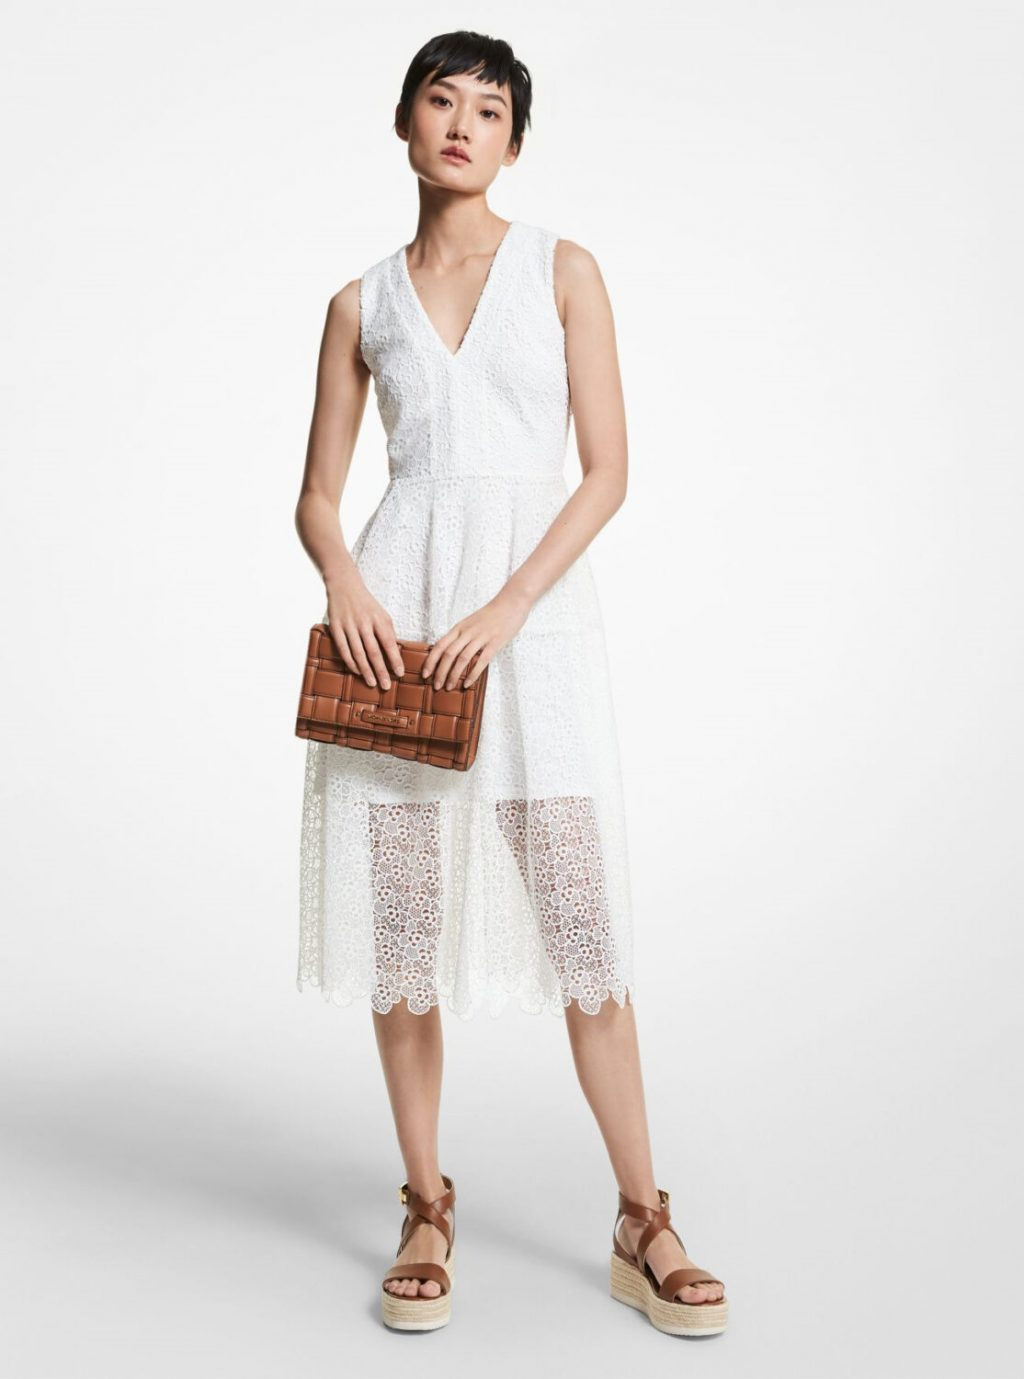 Collection Spring - Summer 2021 MICHAEL KORS FLORAL LACE DRESS WHITE